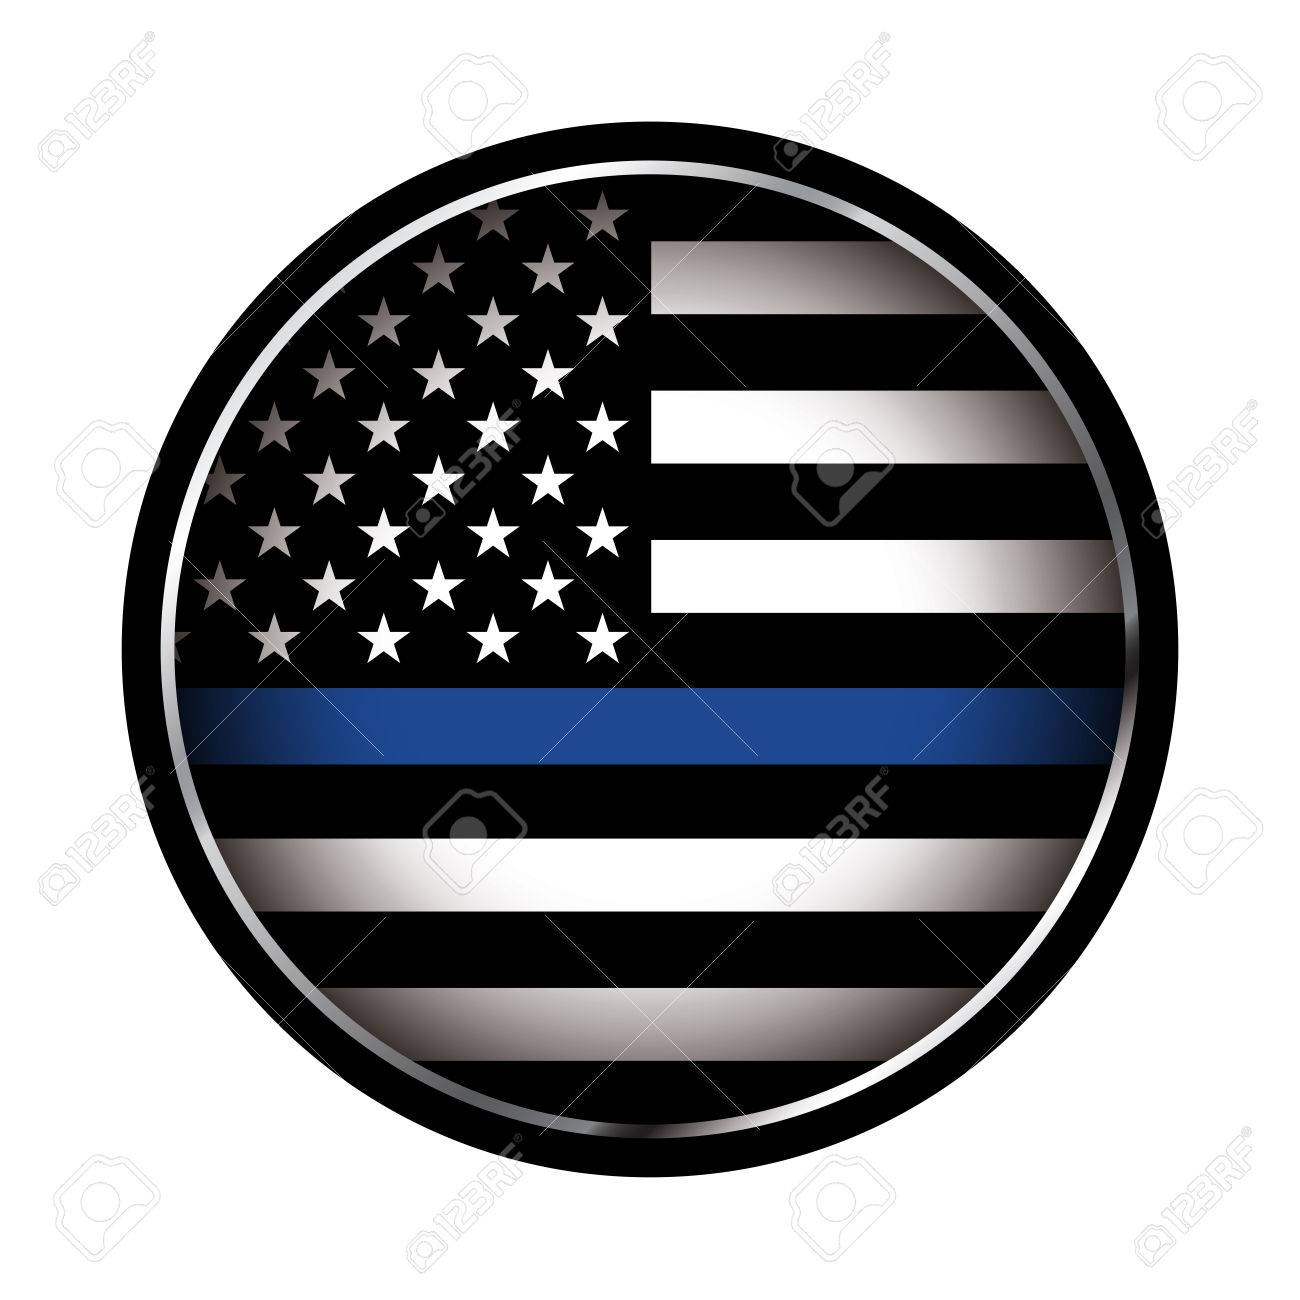 An American flag icon law enforcement support flag. Vector EPS 10 available. - 70203512